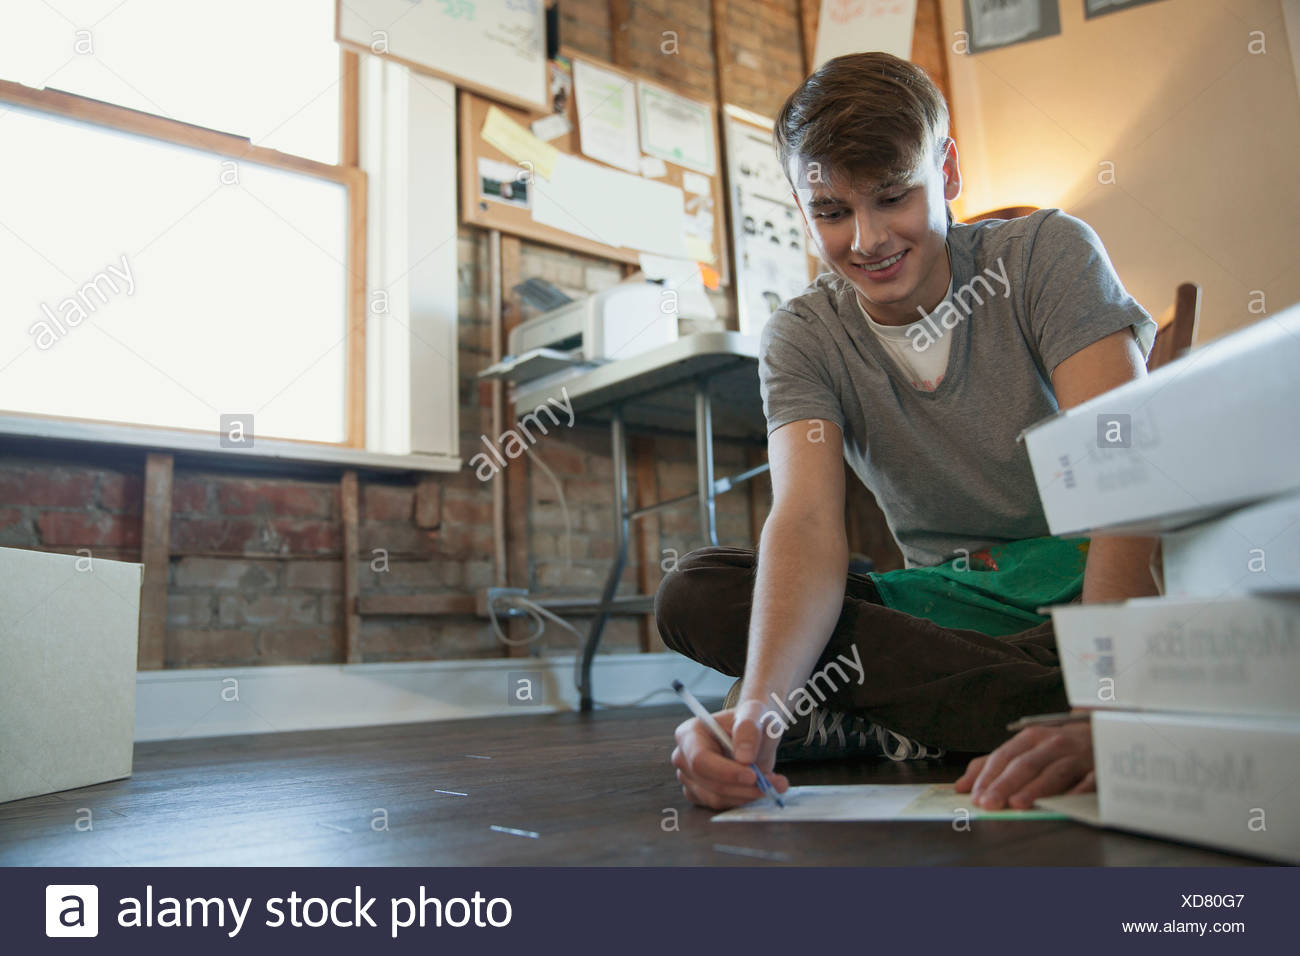 Male design professional sketching while sitting on floor - Stock Image